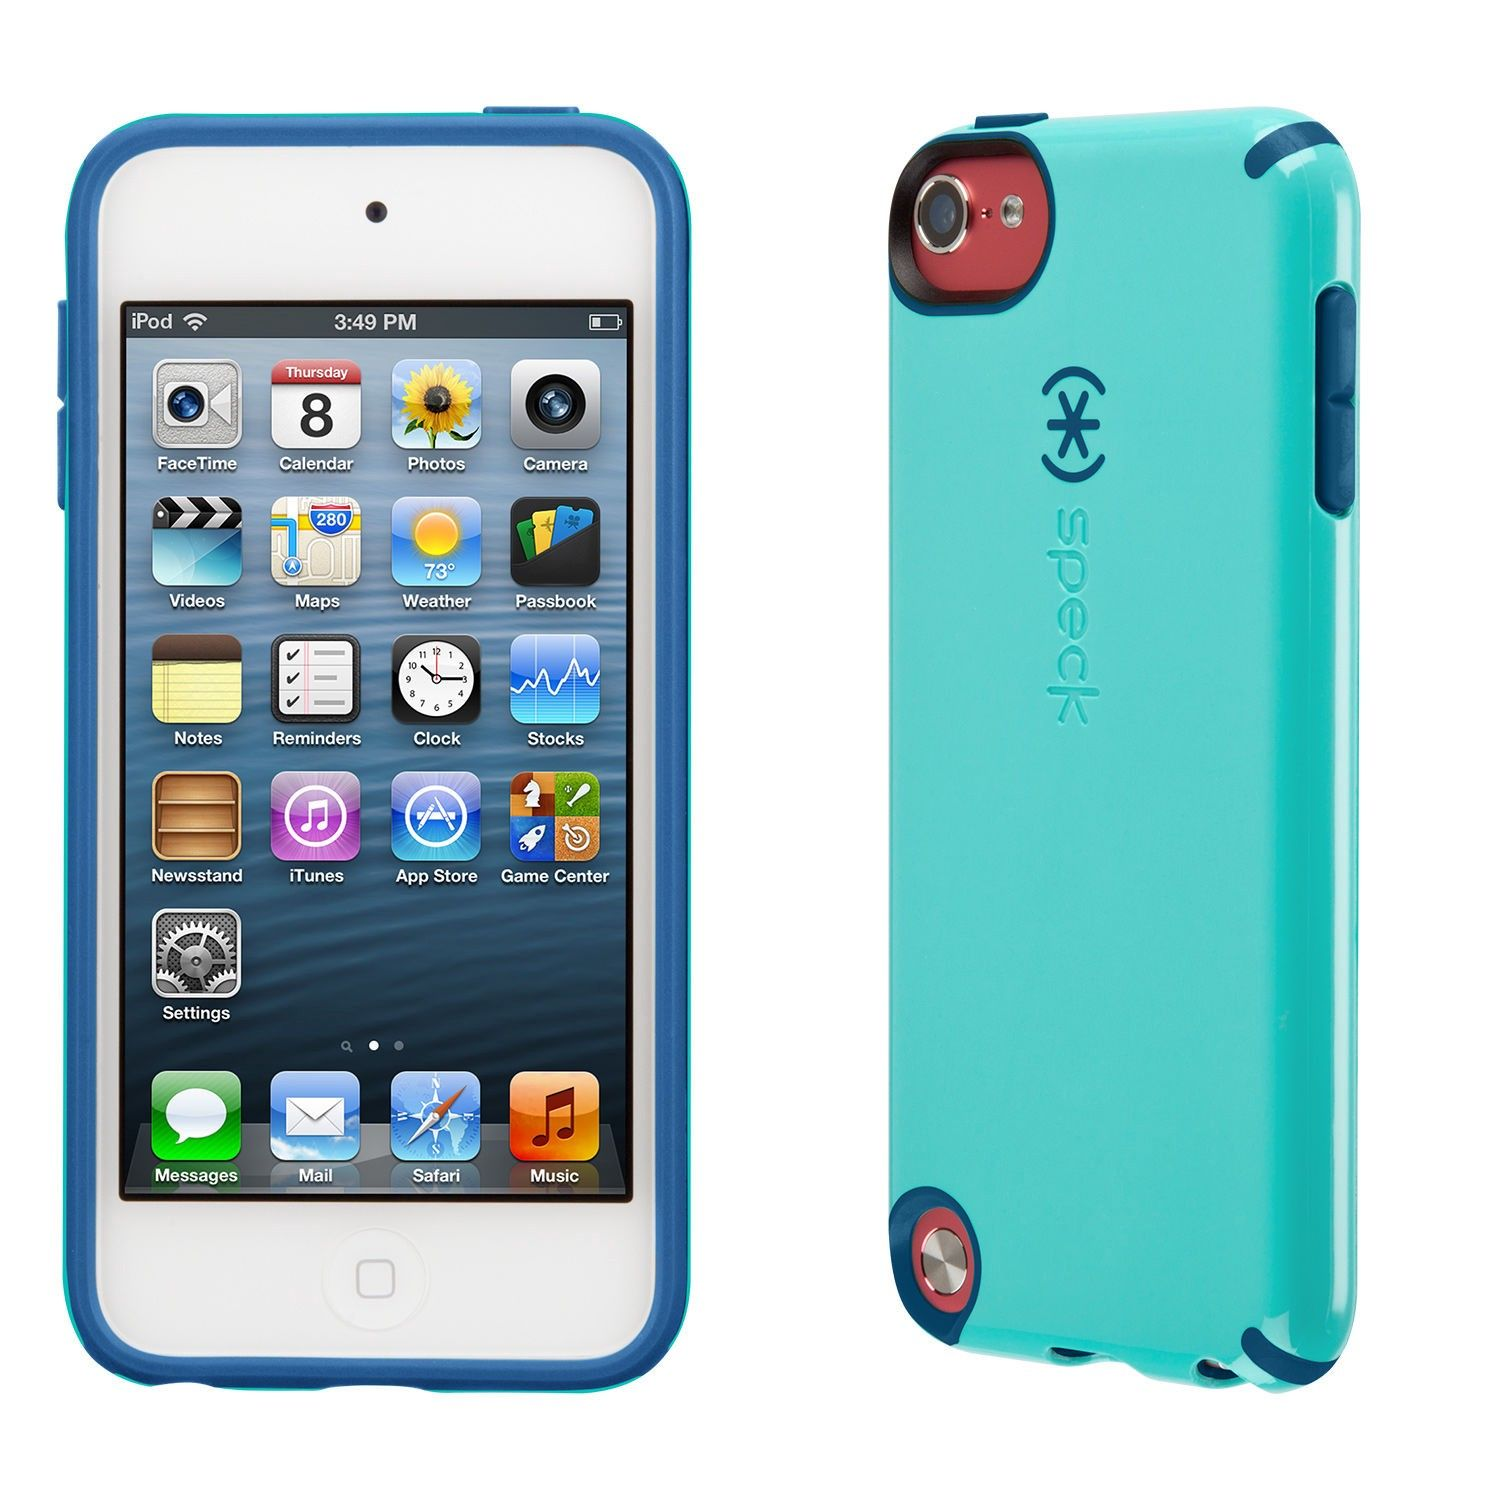 separation shoes 7662e 64e7b Speck Candyshell Ipod Touch 6G & 5G Cases - Caribbean Blue/Deep Sea ...